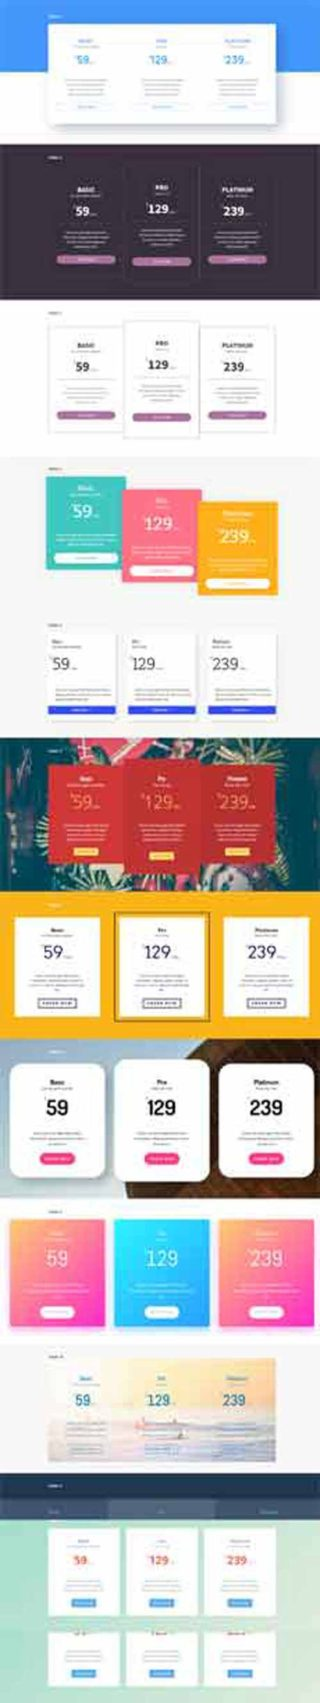 Medical 1 page layout divi theme layouts - Divi pricing table ...